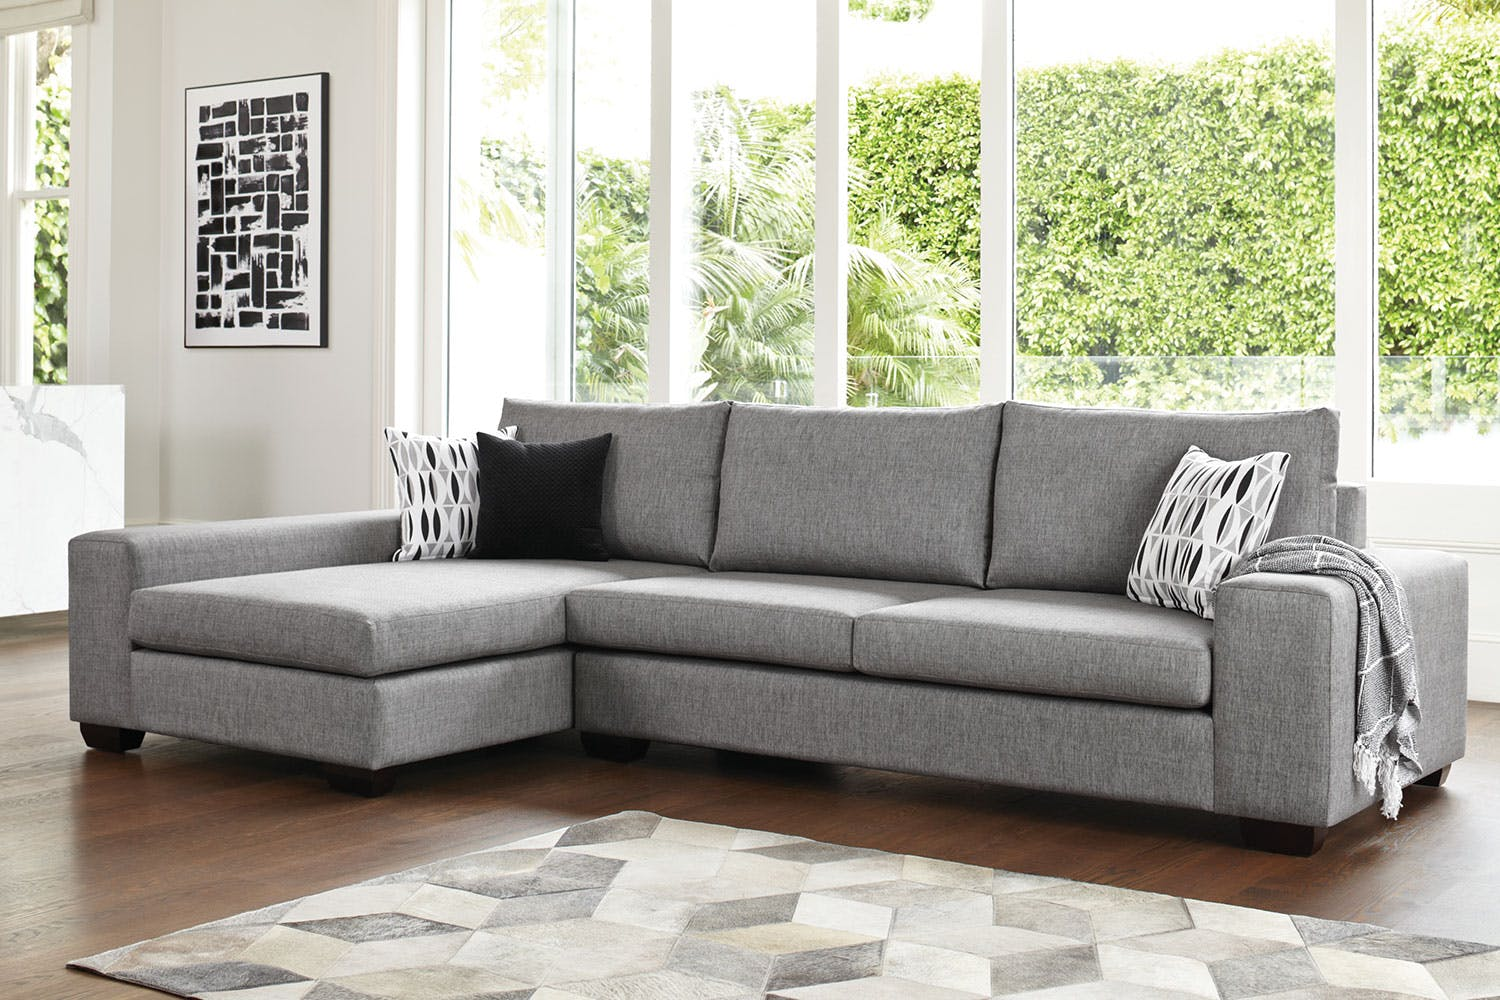 3 seater sofa with chaise nz for 2 5 seater sofa with chaise